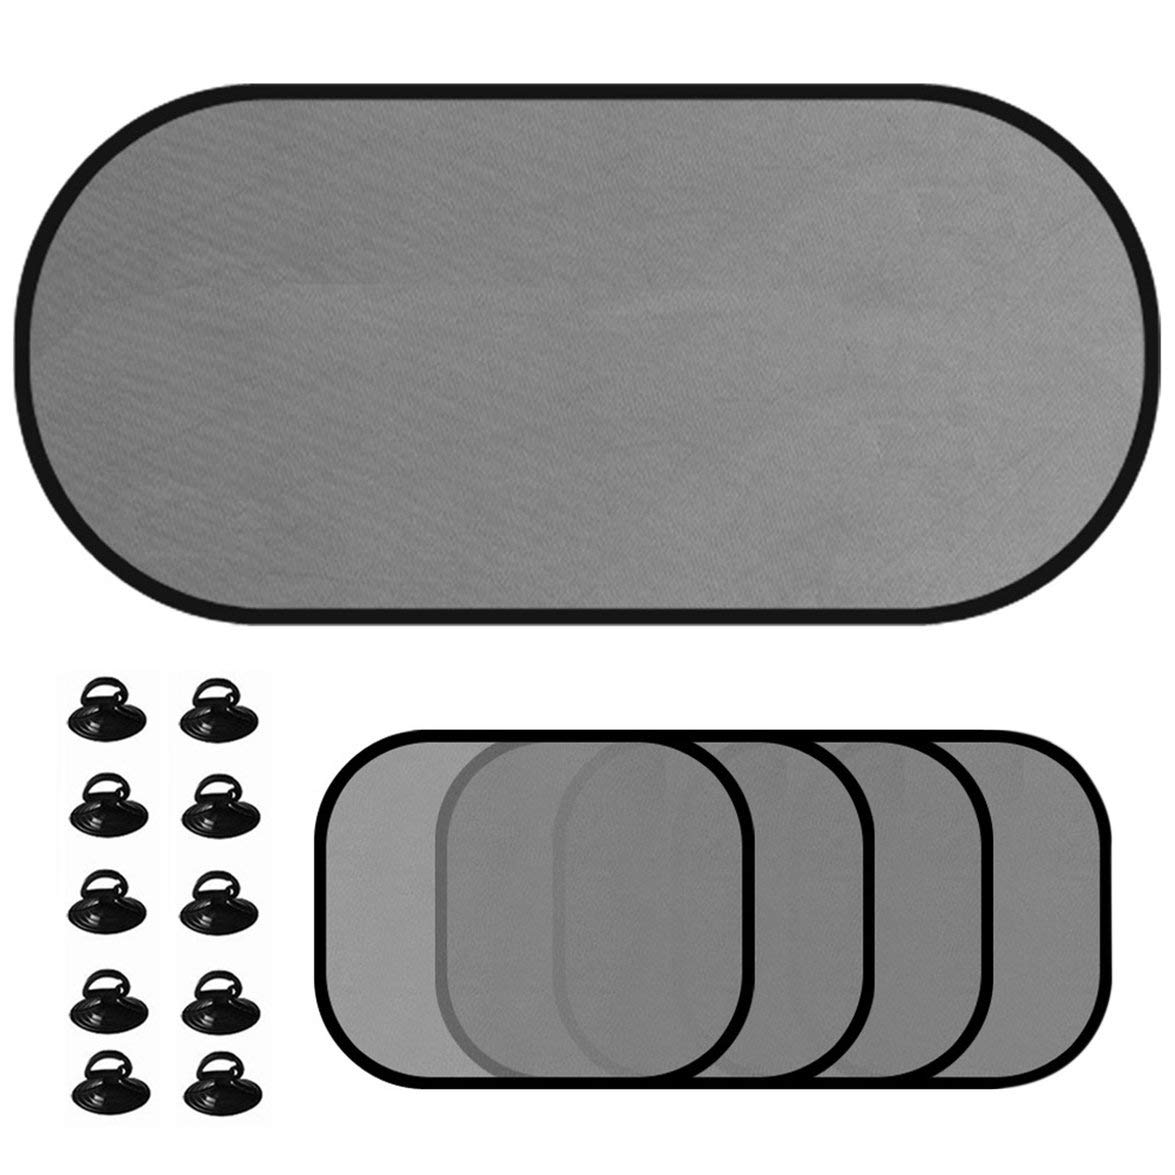 Kongqiabona 5pcs/Set Car Window Sunshade Mesh Auto Sun Visor Curtain with Suction Cup Front Rear Side Curtain Car Styling Covers Sunshade